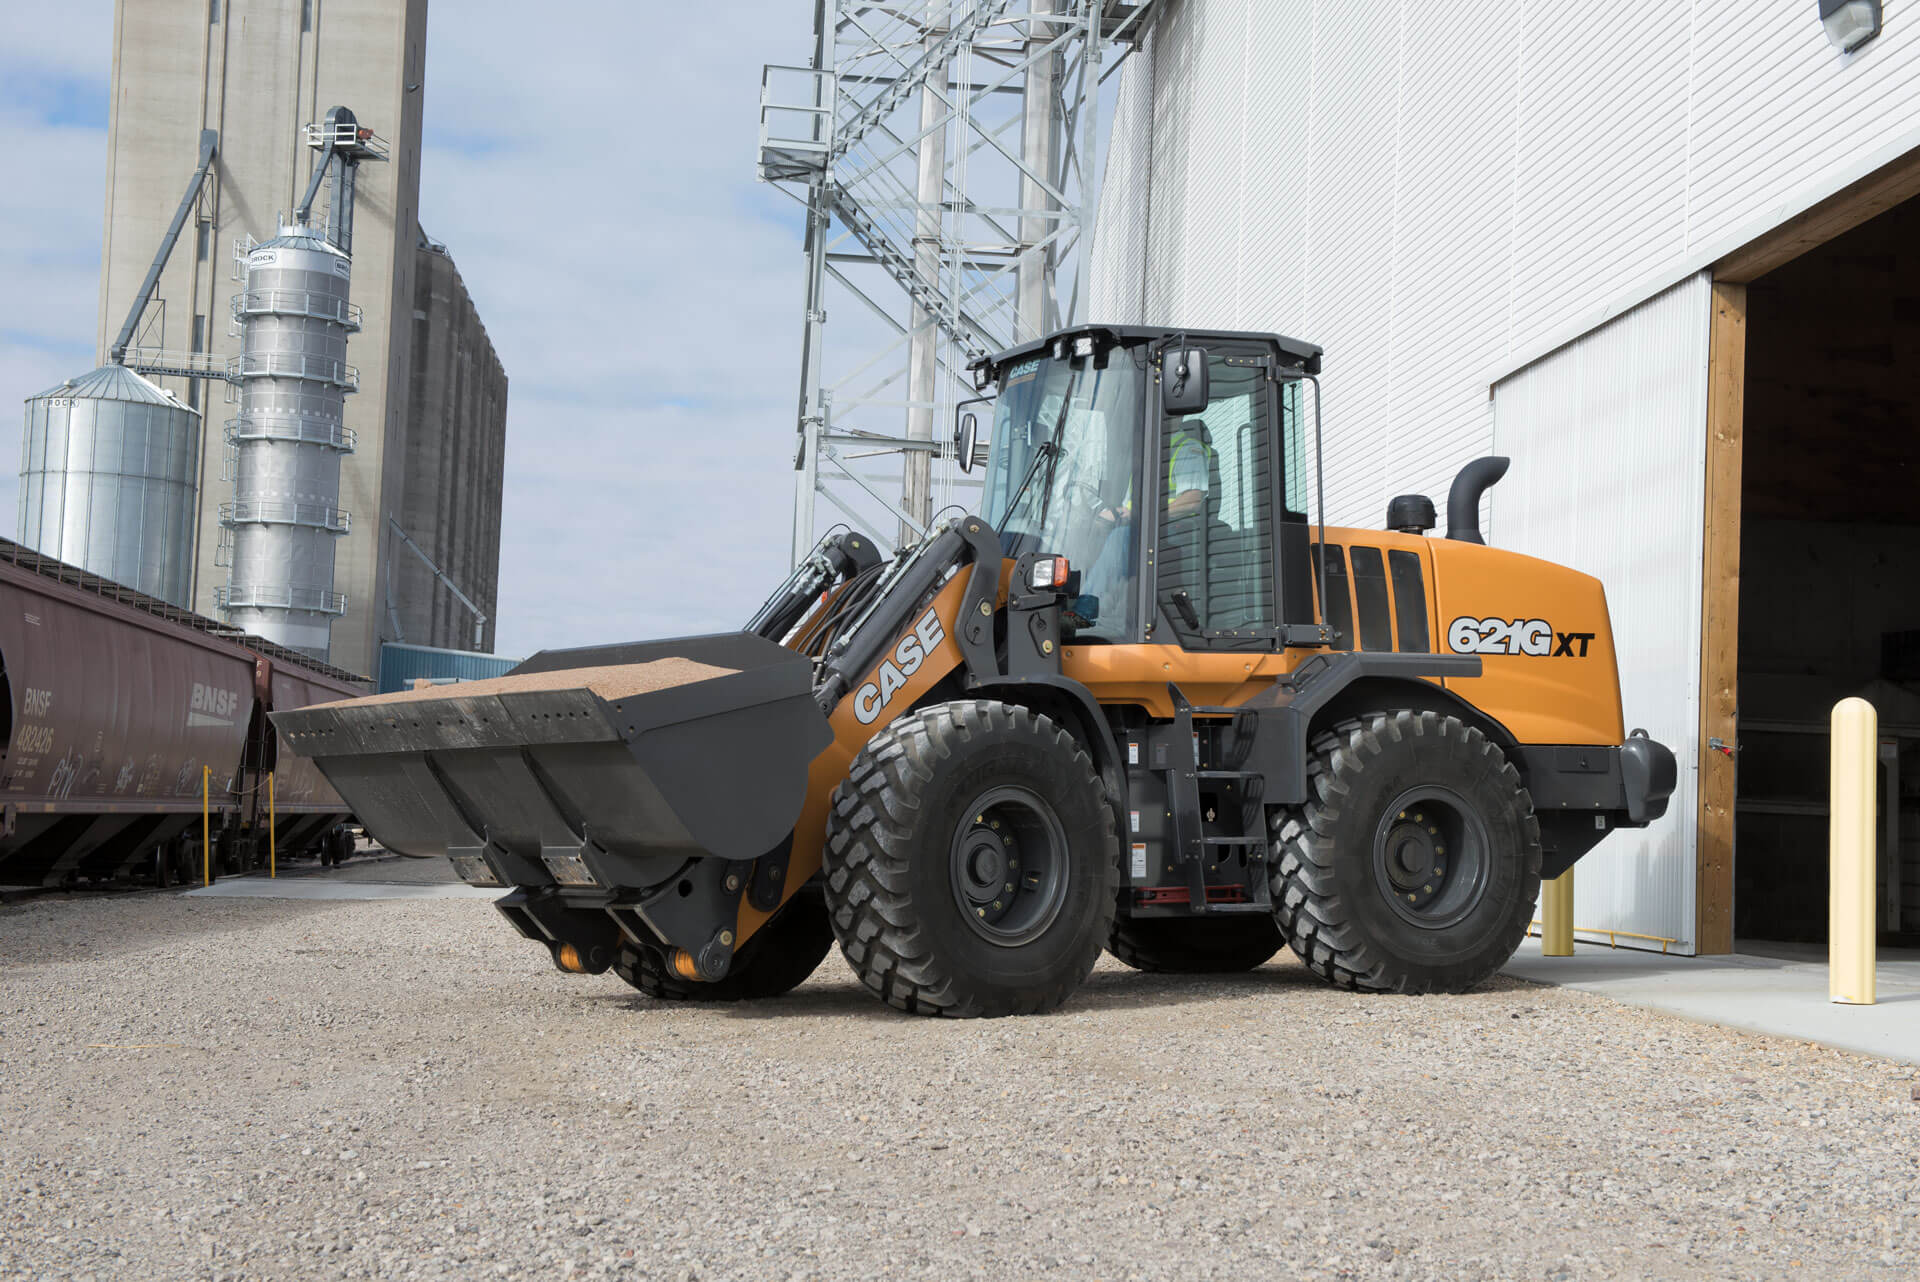 CASE 621G Wheel Loader